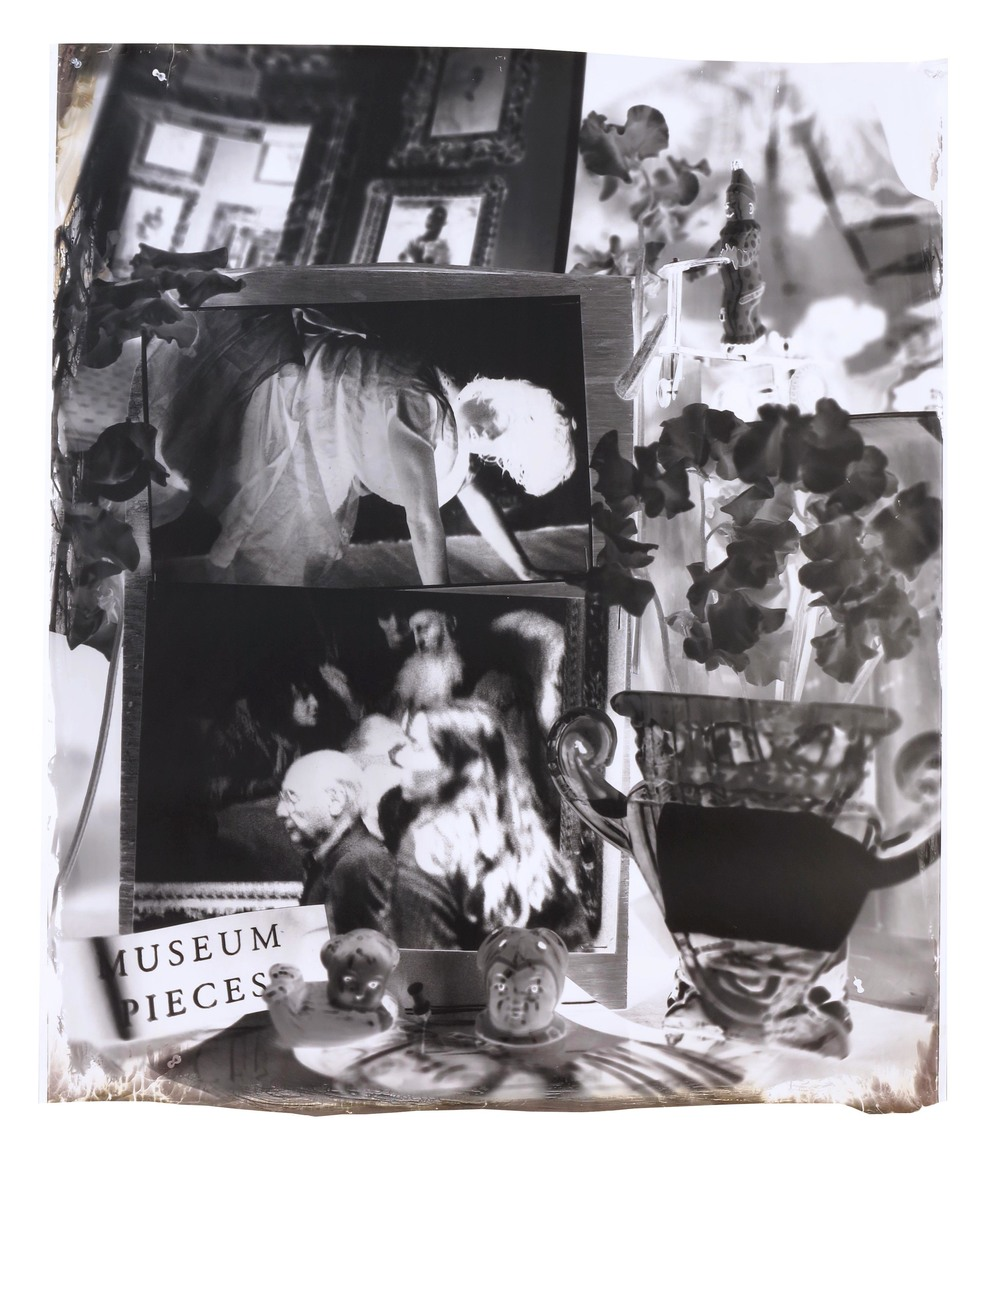 Museum Pieces and Rachel  1999  gelatin silver print  47.5 x 41 inches